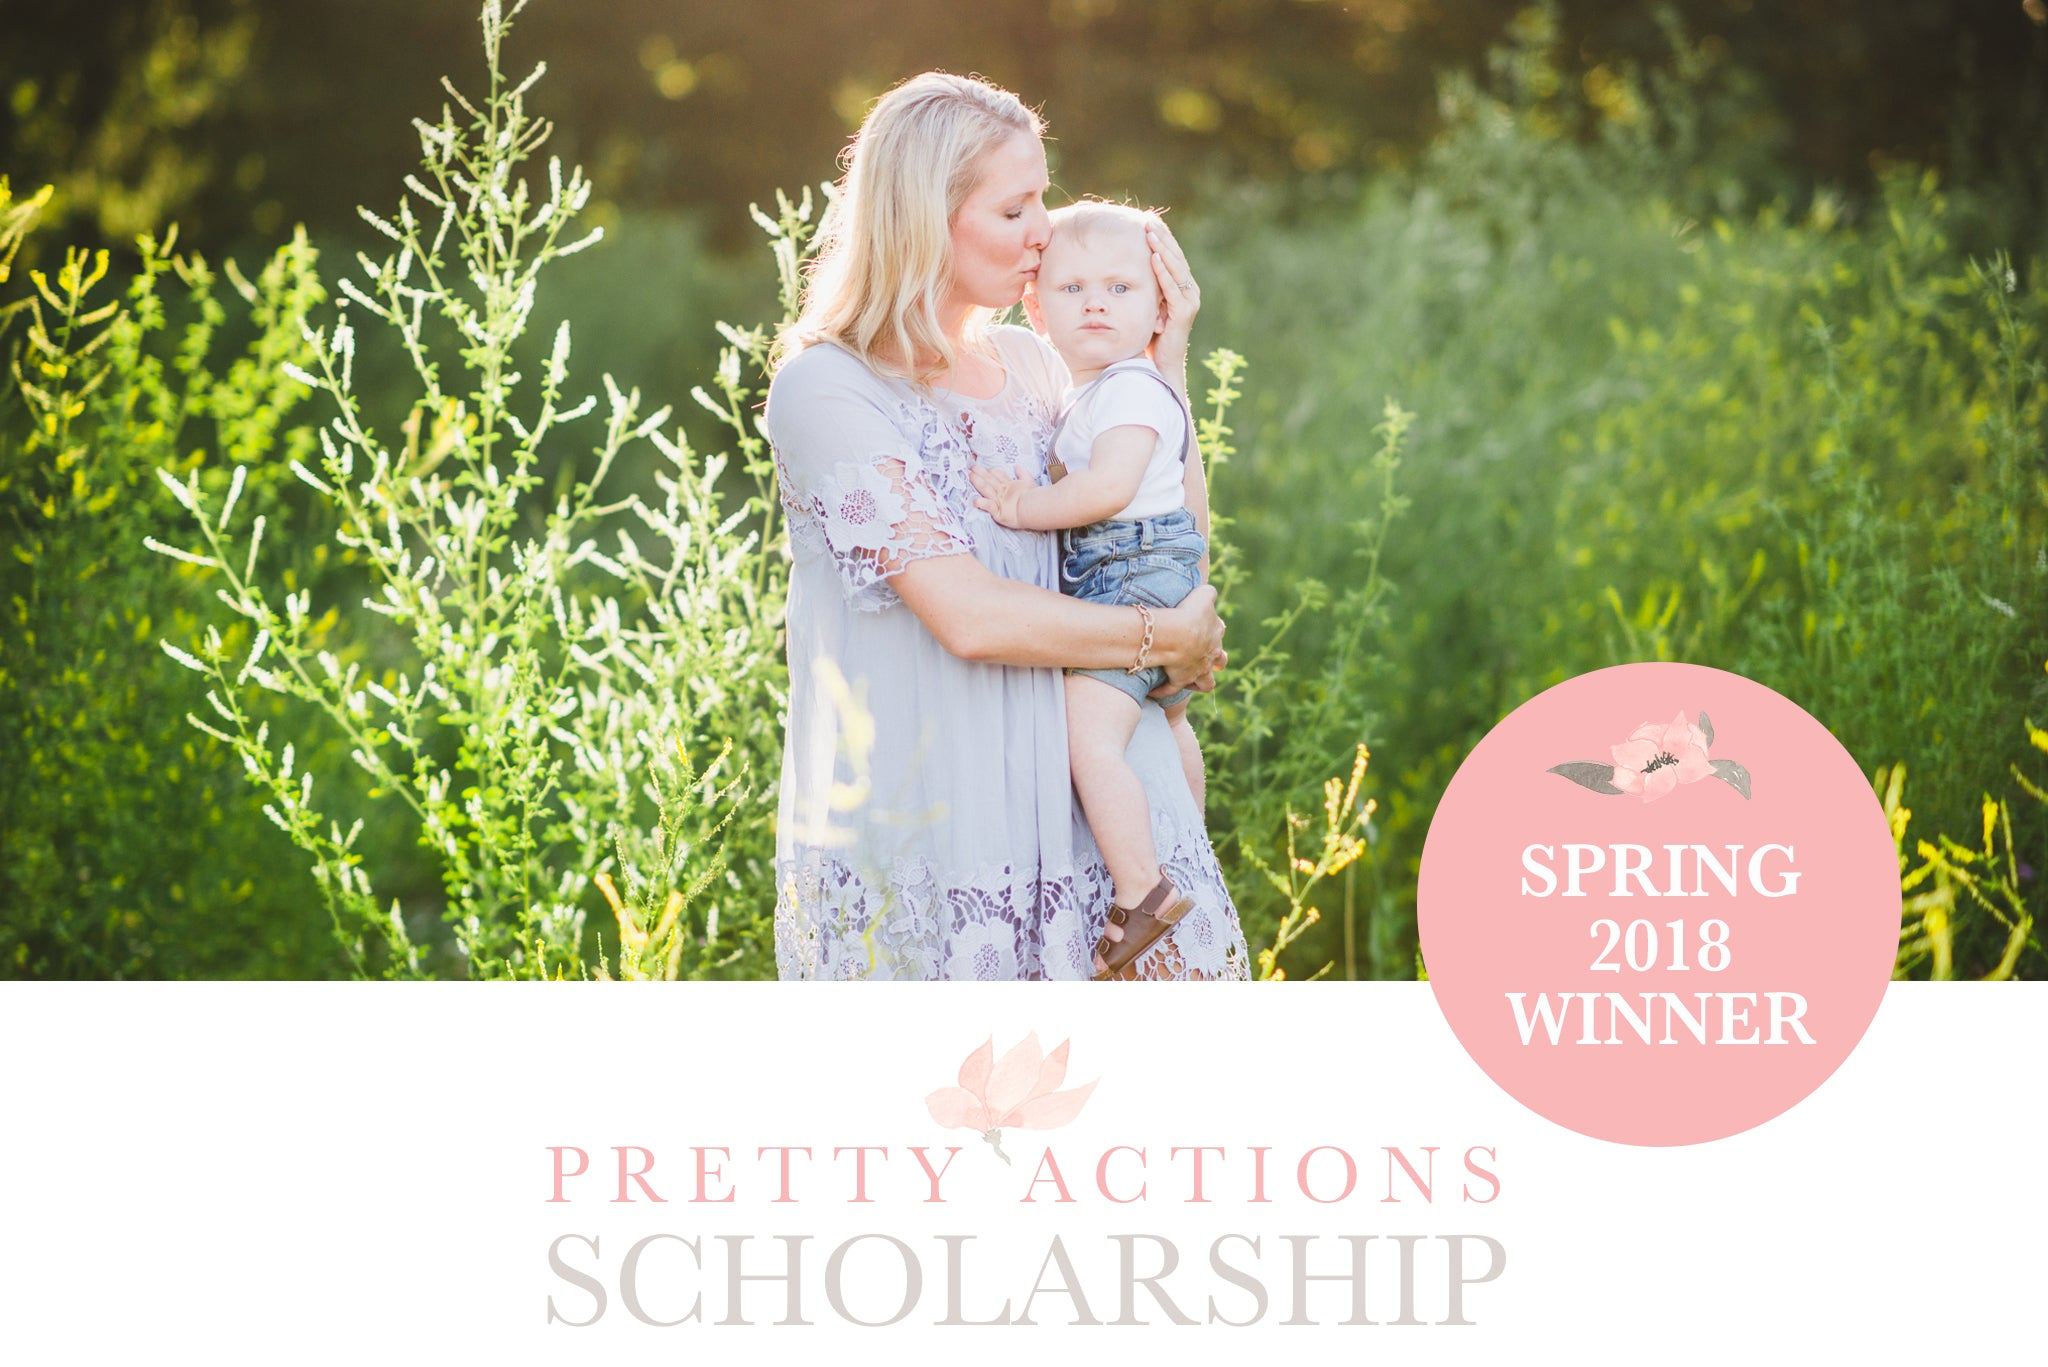 Pretty Photoshop Actions Spring 2018 Scholarship Winner Announcement